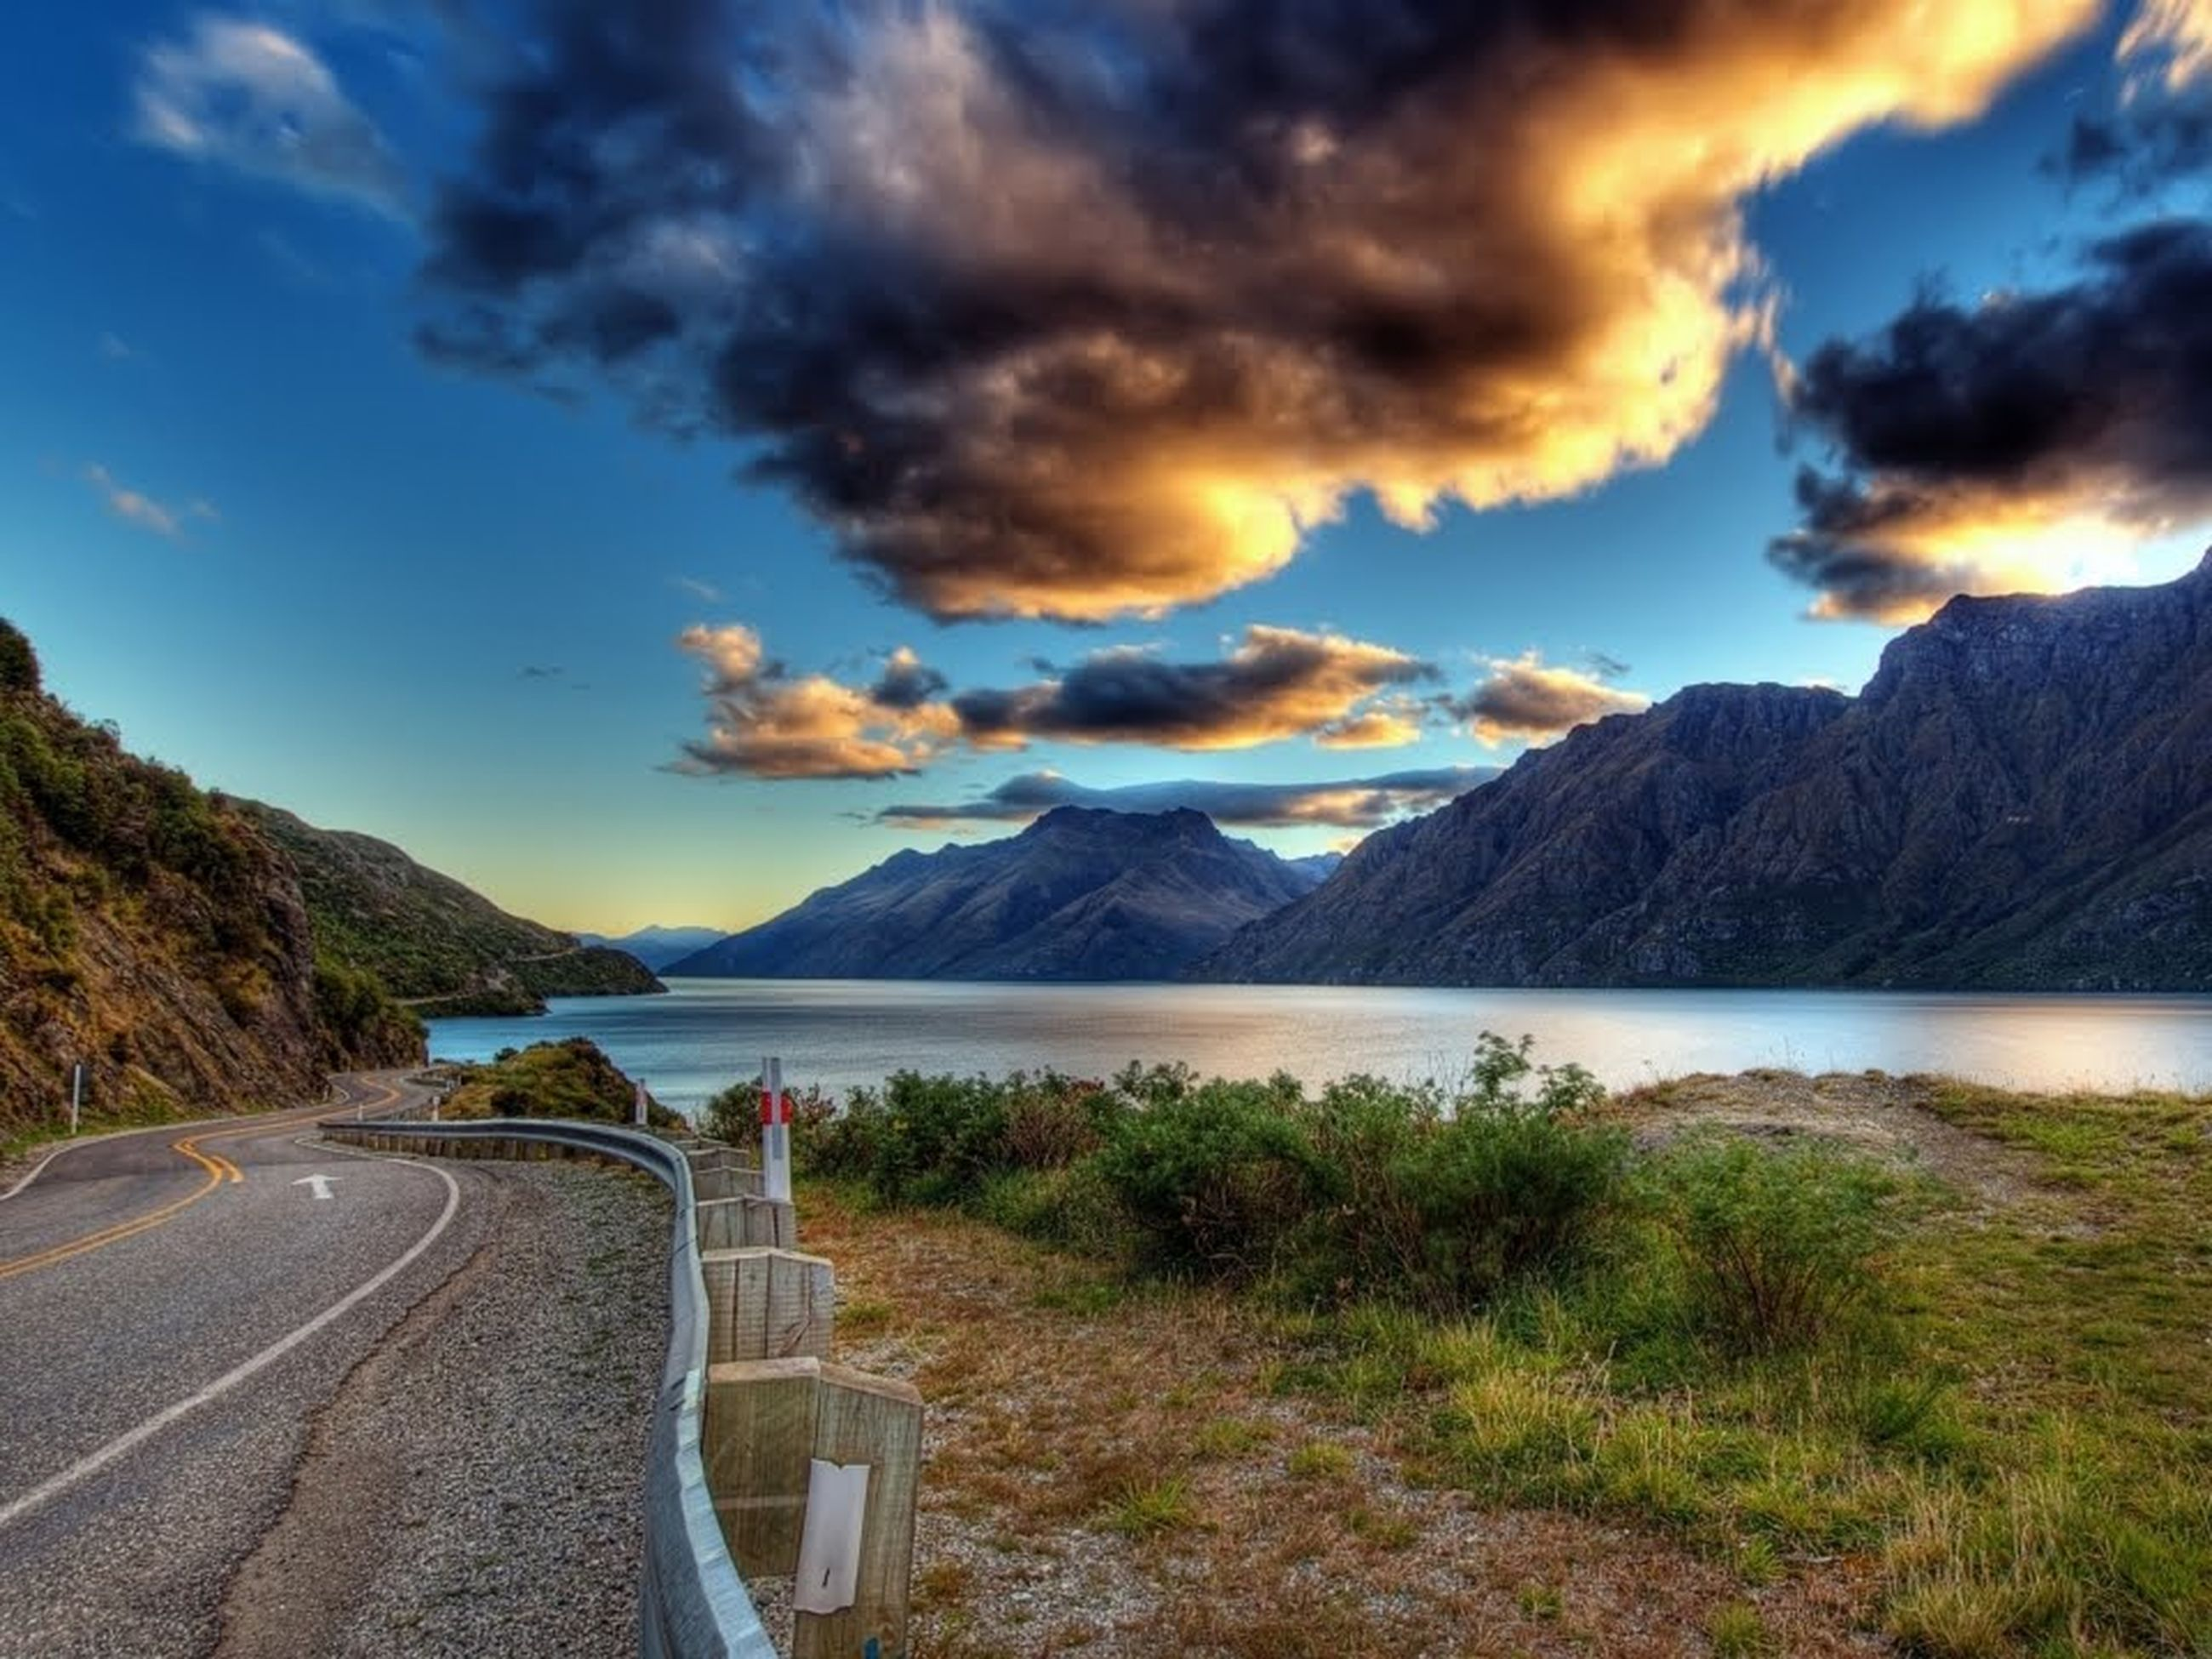 mountain, cloud - sky, sky, scenics, nature, beauty in nature, road, outdoors, mountain range, tranquility, landscape, no people, water, day